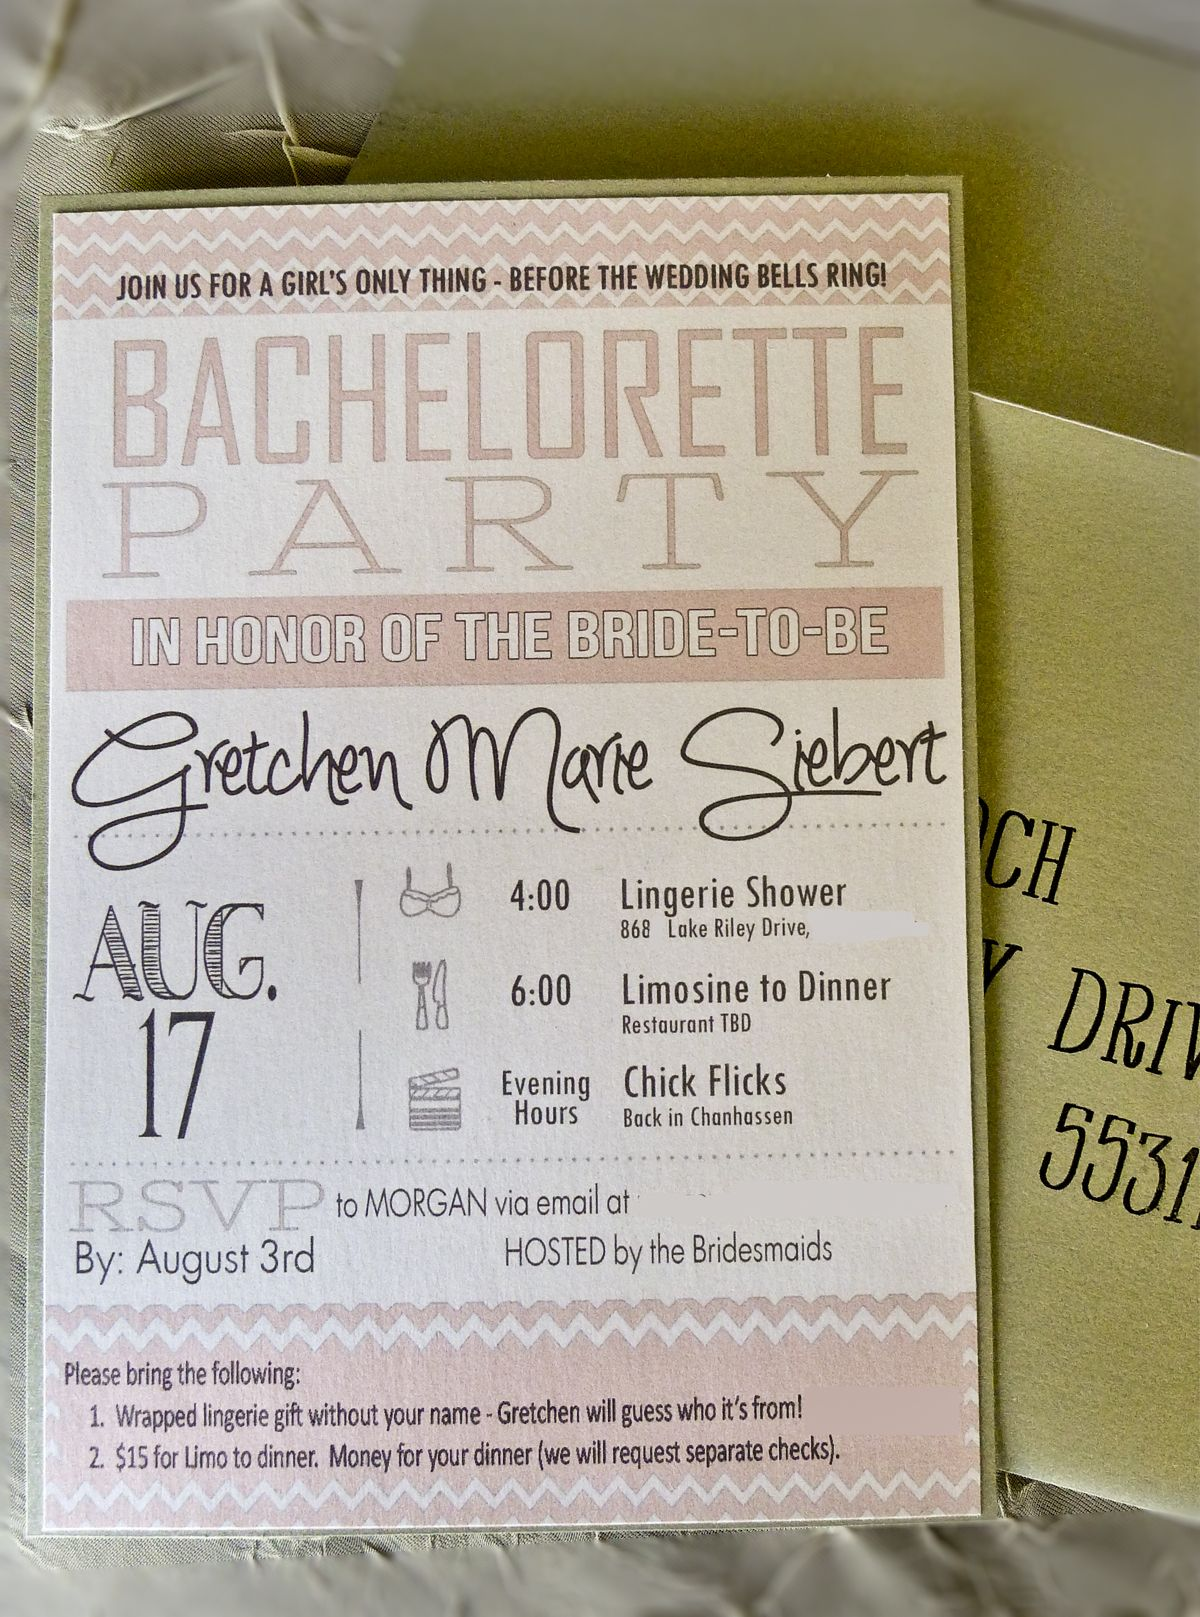 Bachelorette party homemade invite My mom designed these with the